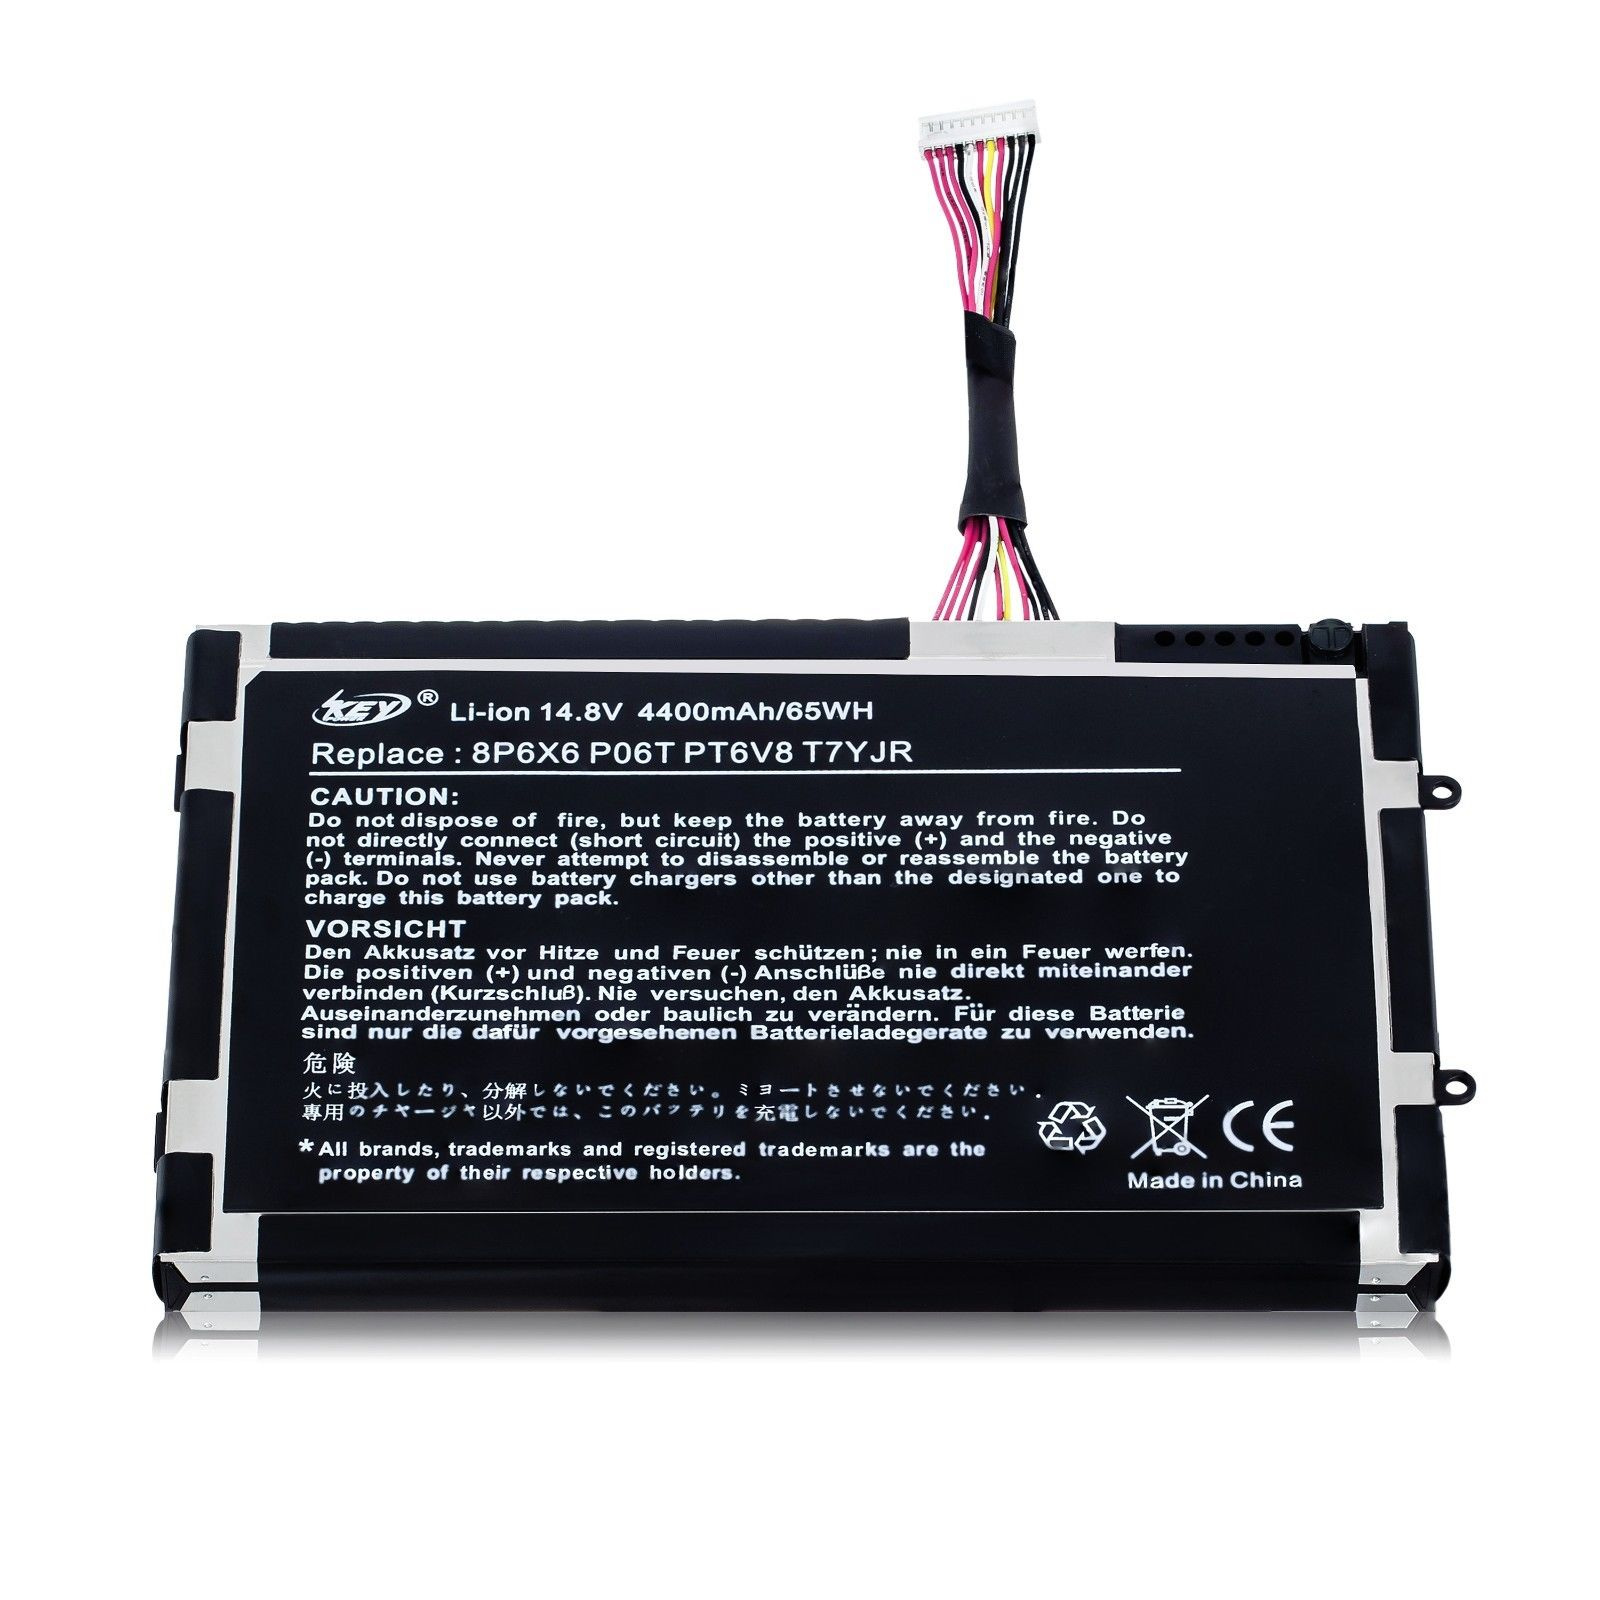 Dell Alienware M11x R1 Series batterie